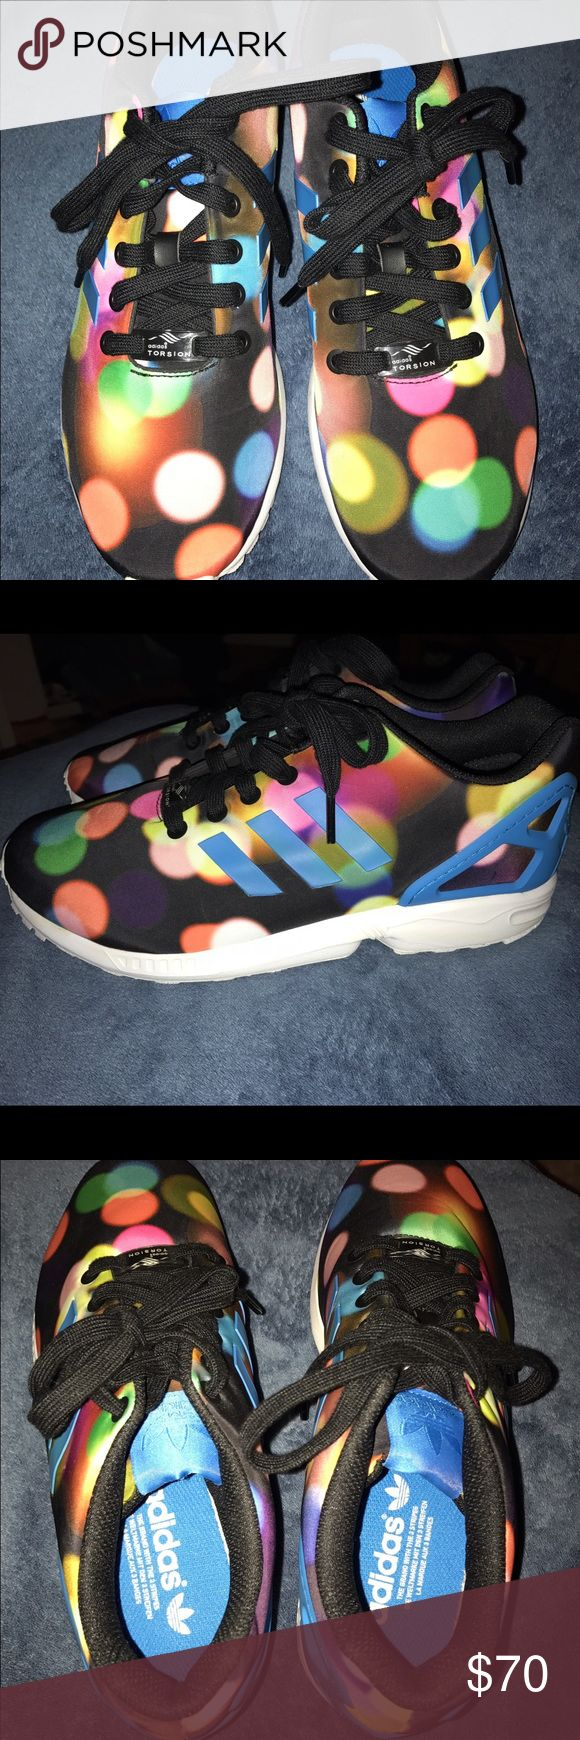 Adidas ZX Flux multicolor sneakers NWOT Adidas ZX Flux running sneakers. Multicolored, great condition. Size 8. Worn literally one time. Willing to negotiate a price. Adidas Shoes Sneakers